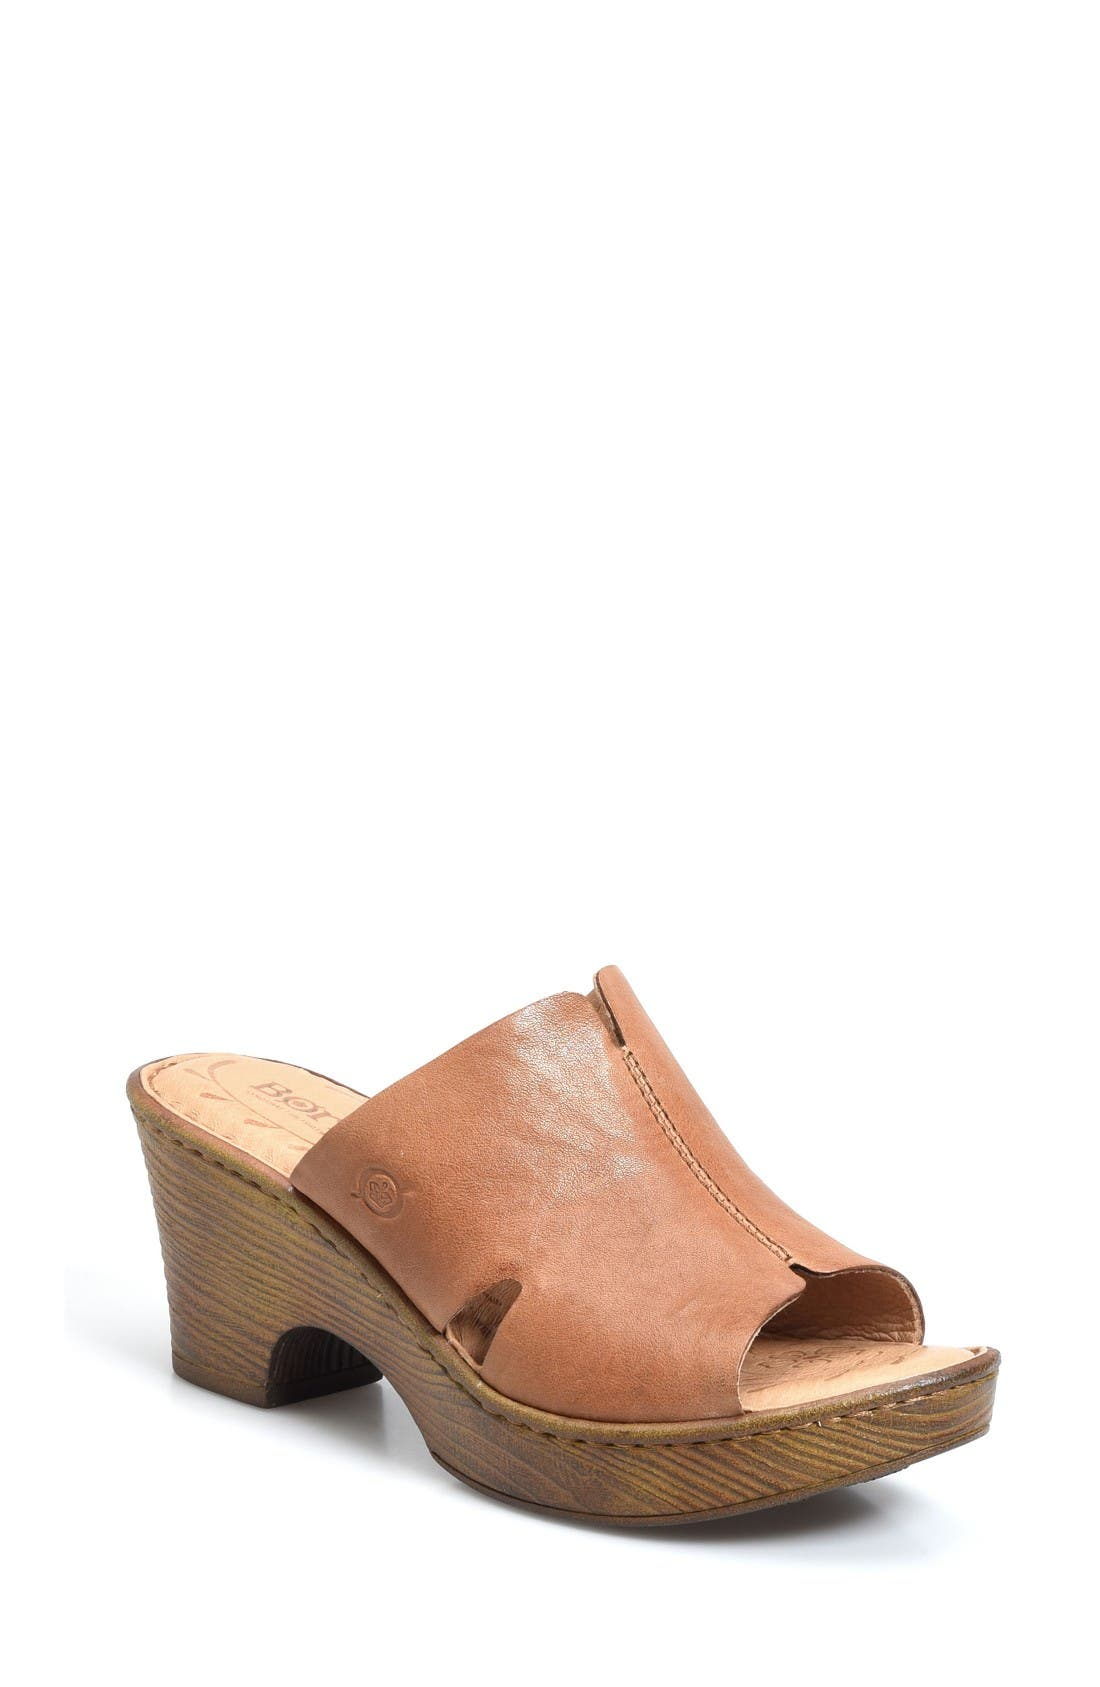 Crato Mule,                             Main thumbnail 1, color,                             Brown Leather